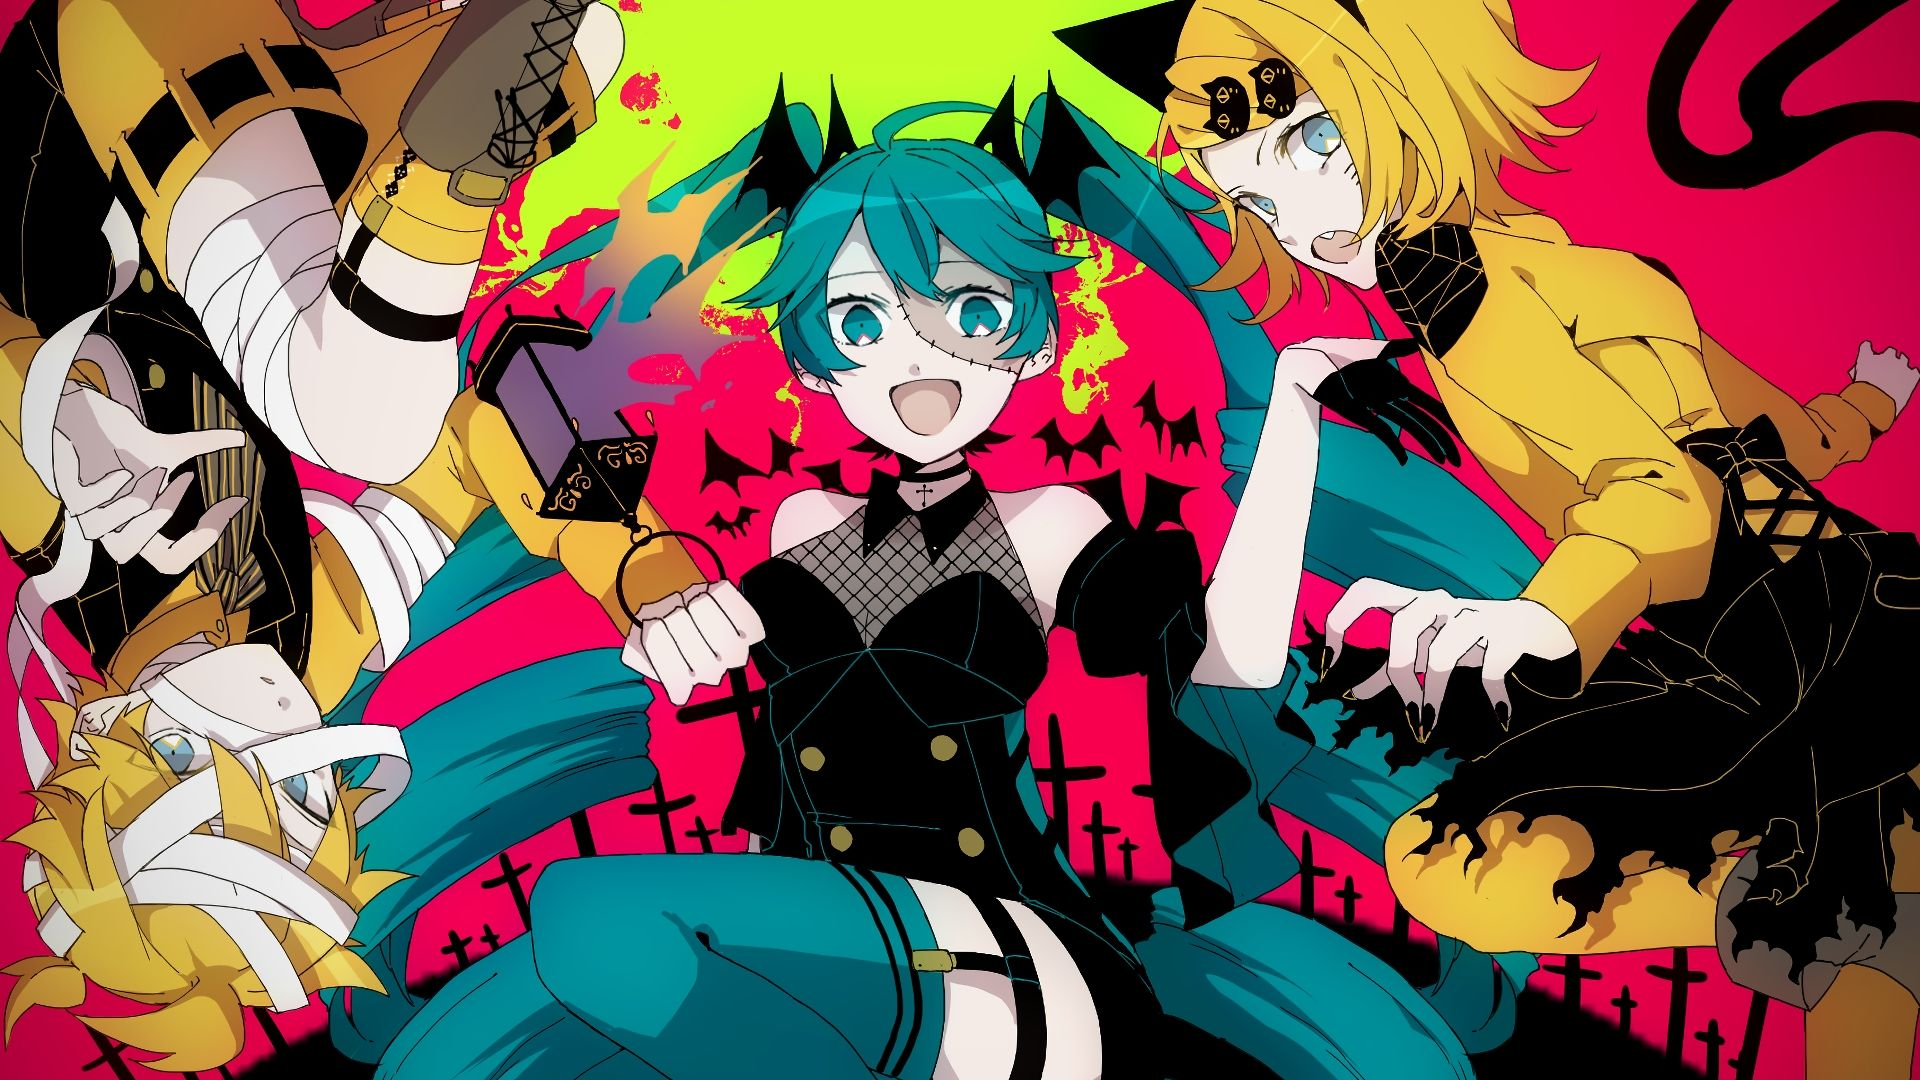 Cute Halloween Wallpapers For Android Desktop Wallpaper Hatsune Miku Kagamine Rin Len